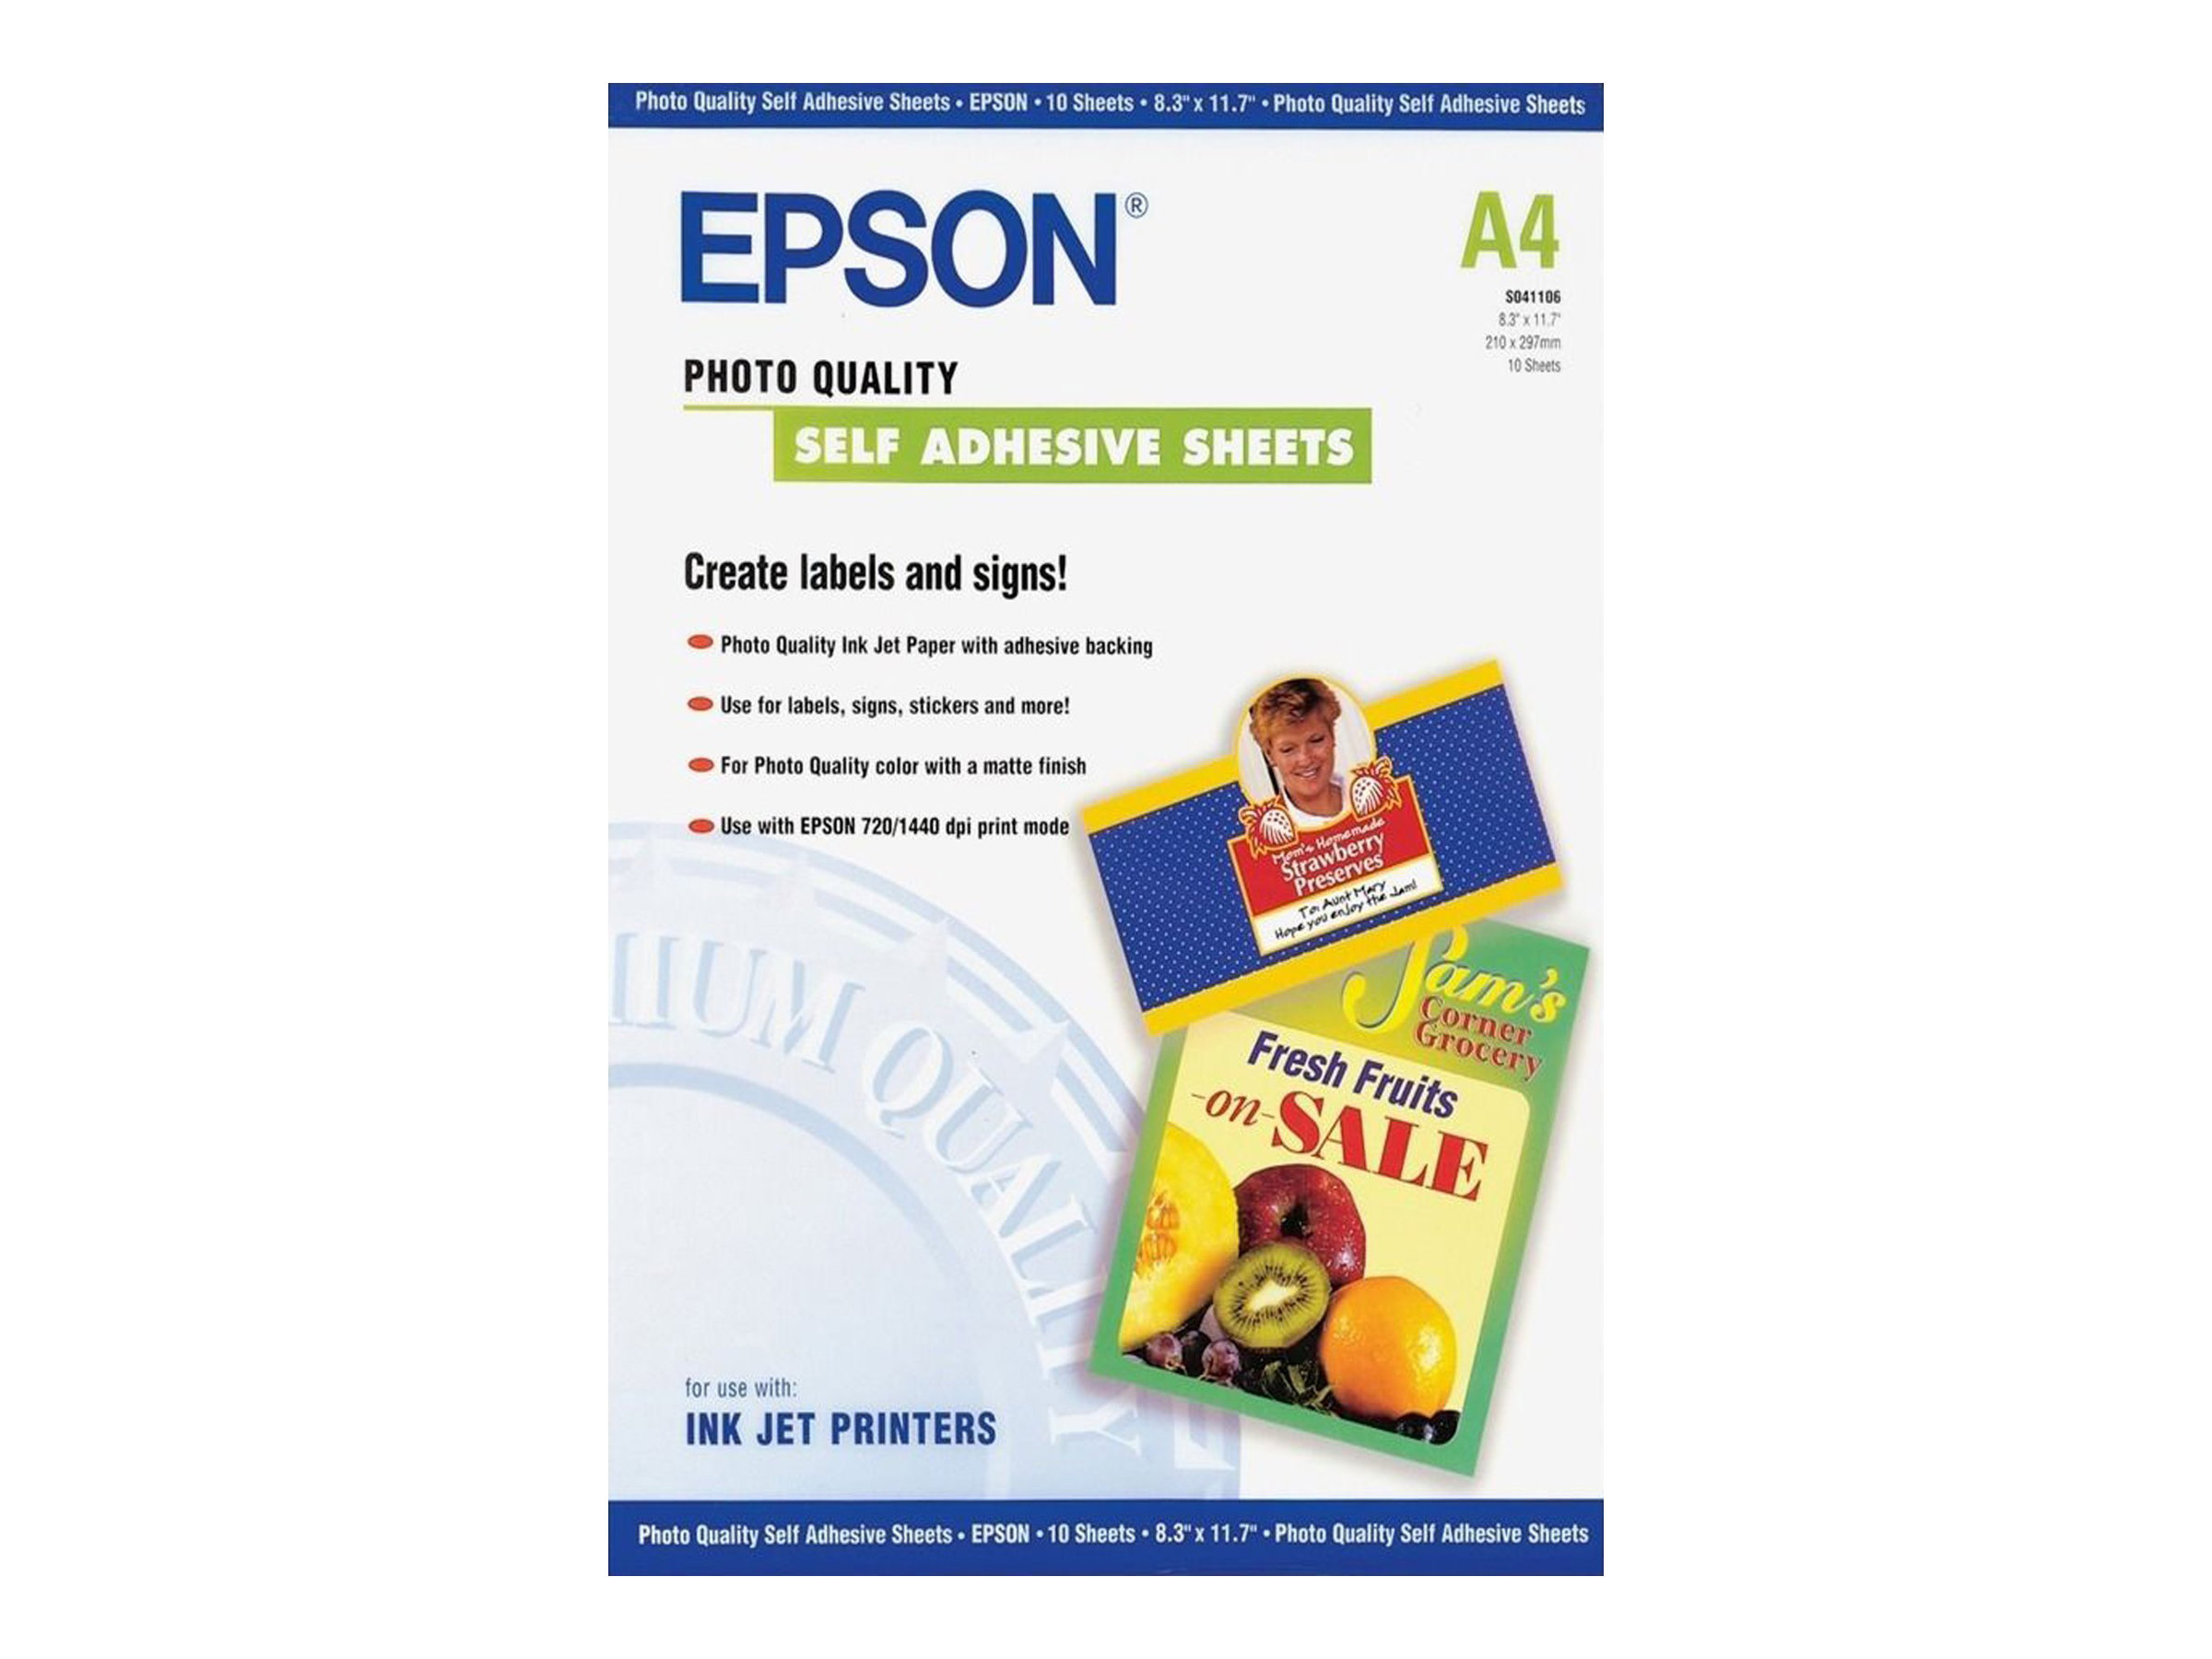 Epson Photo Quality Self Adhesive Sheets - Selbstklebend - A4 (210 x 297 mm) - 167 g/m² - 10 Stck. Blätter - für Expression Home HD XP-15000; Expression Premium XP-540, 6000, 6005, 900